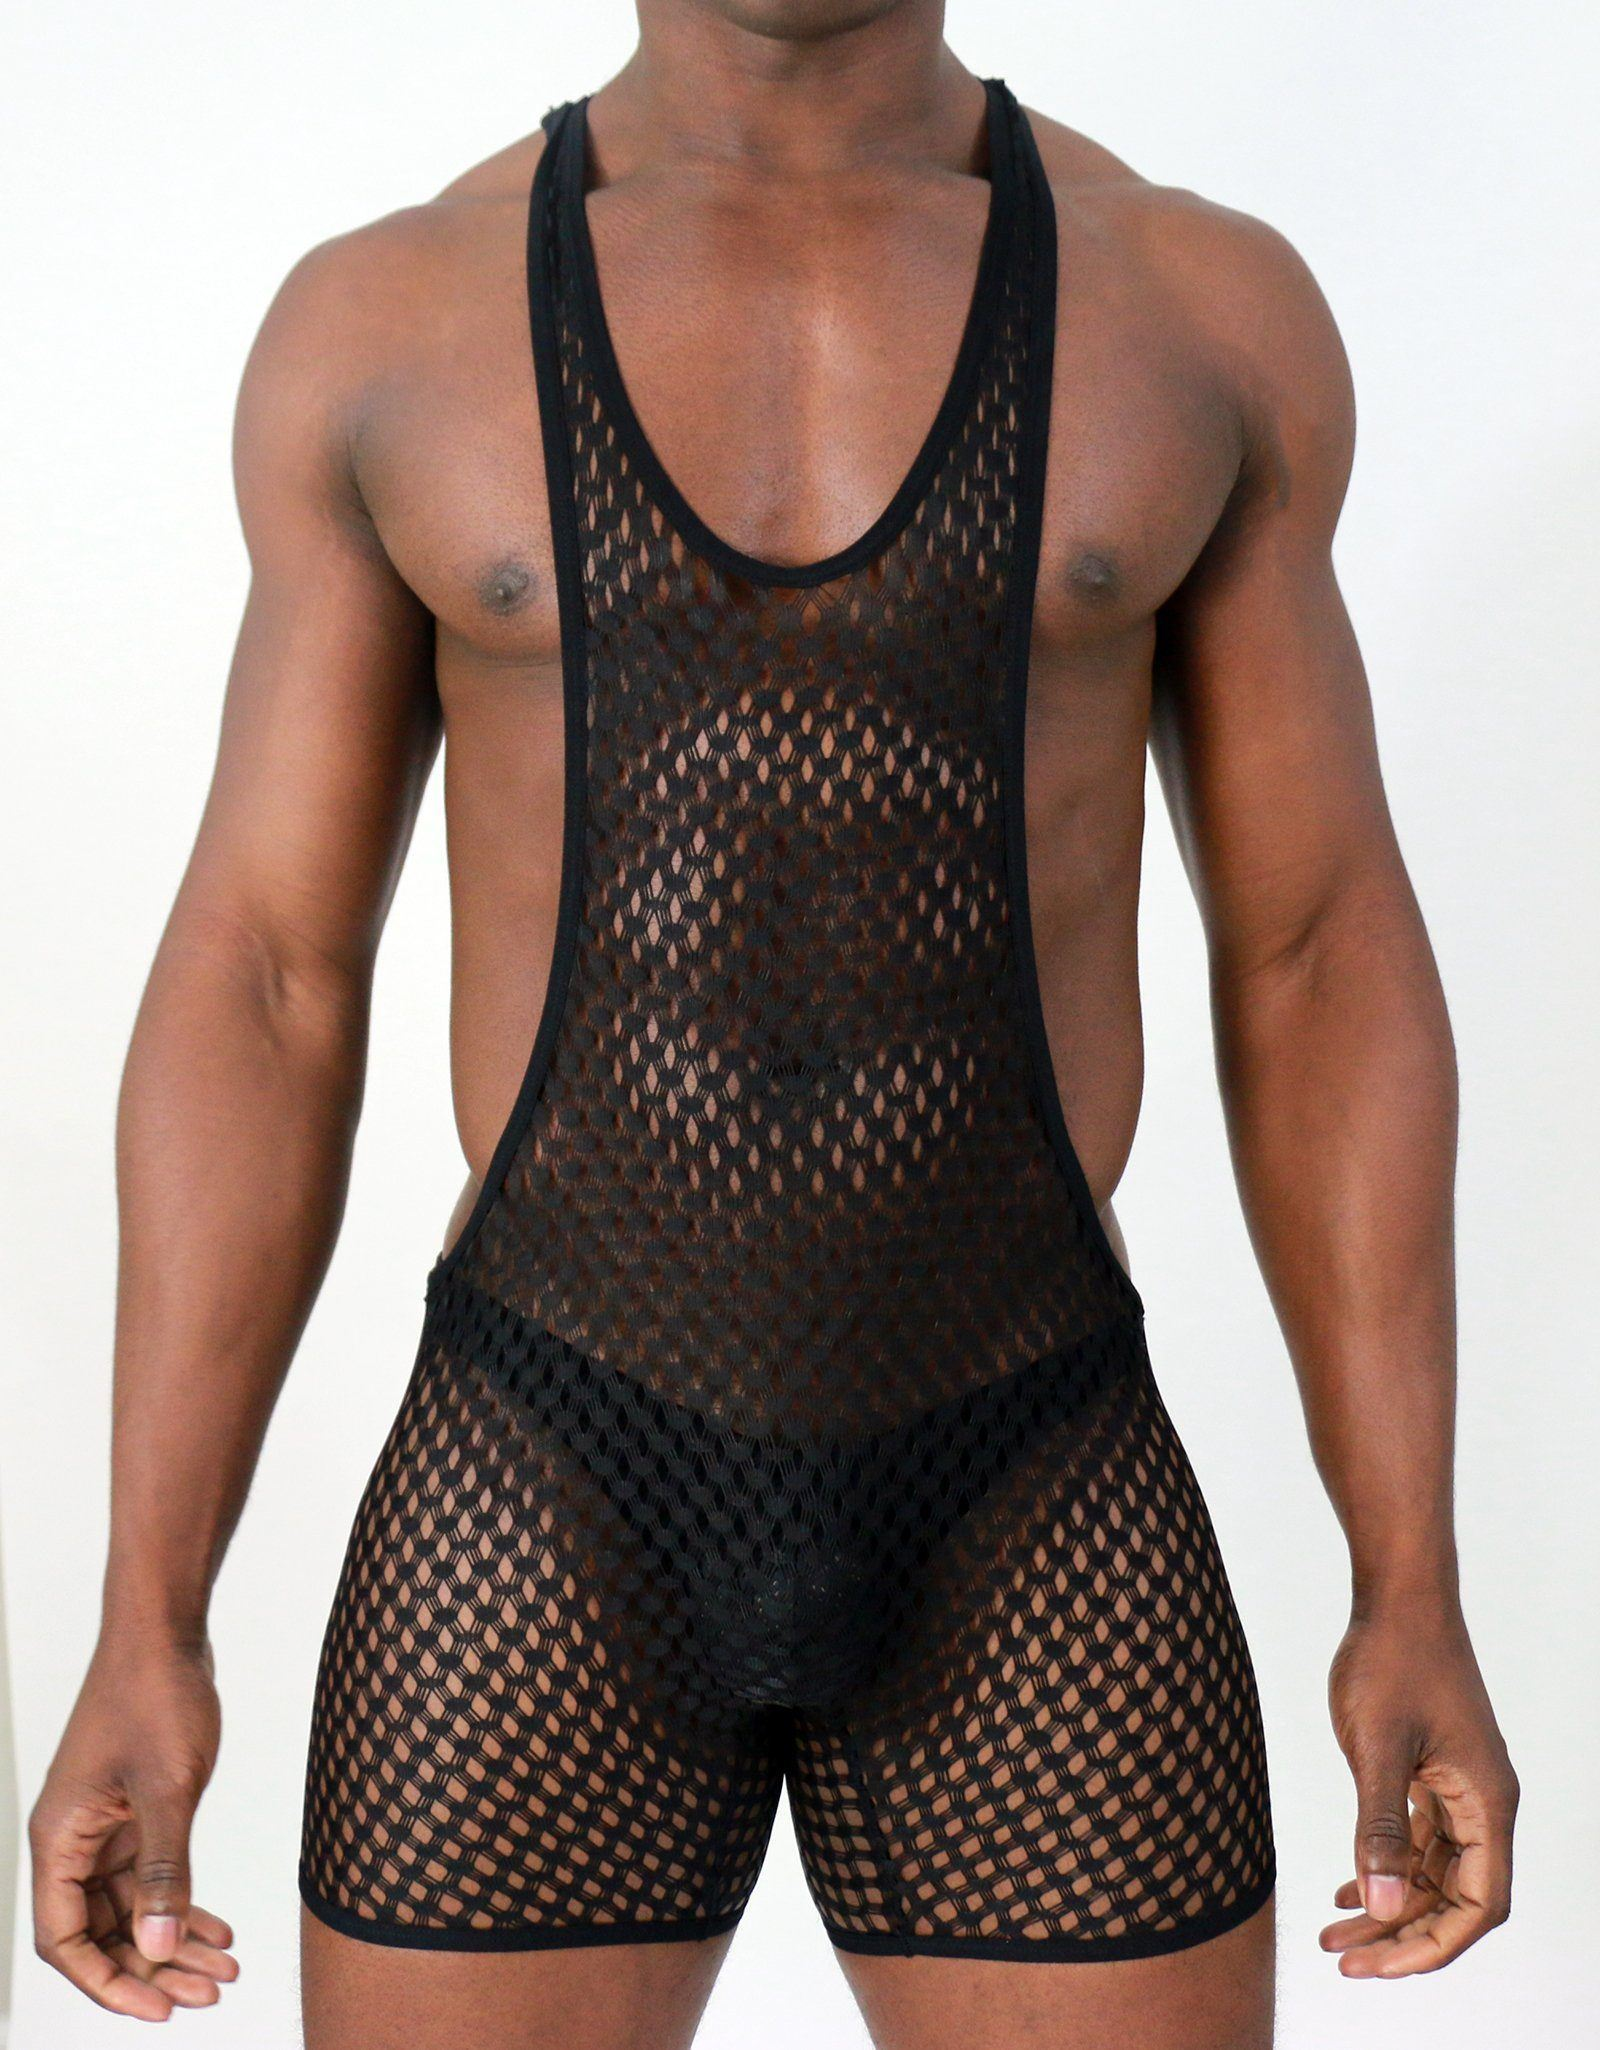 Midnight Mesh Body Suit Body Suit TasteeTreasures 28in - 30in